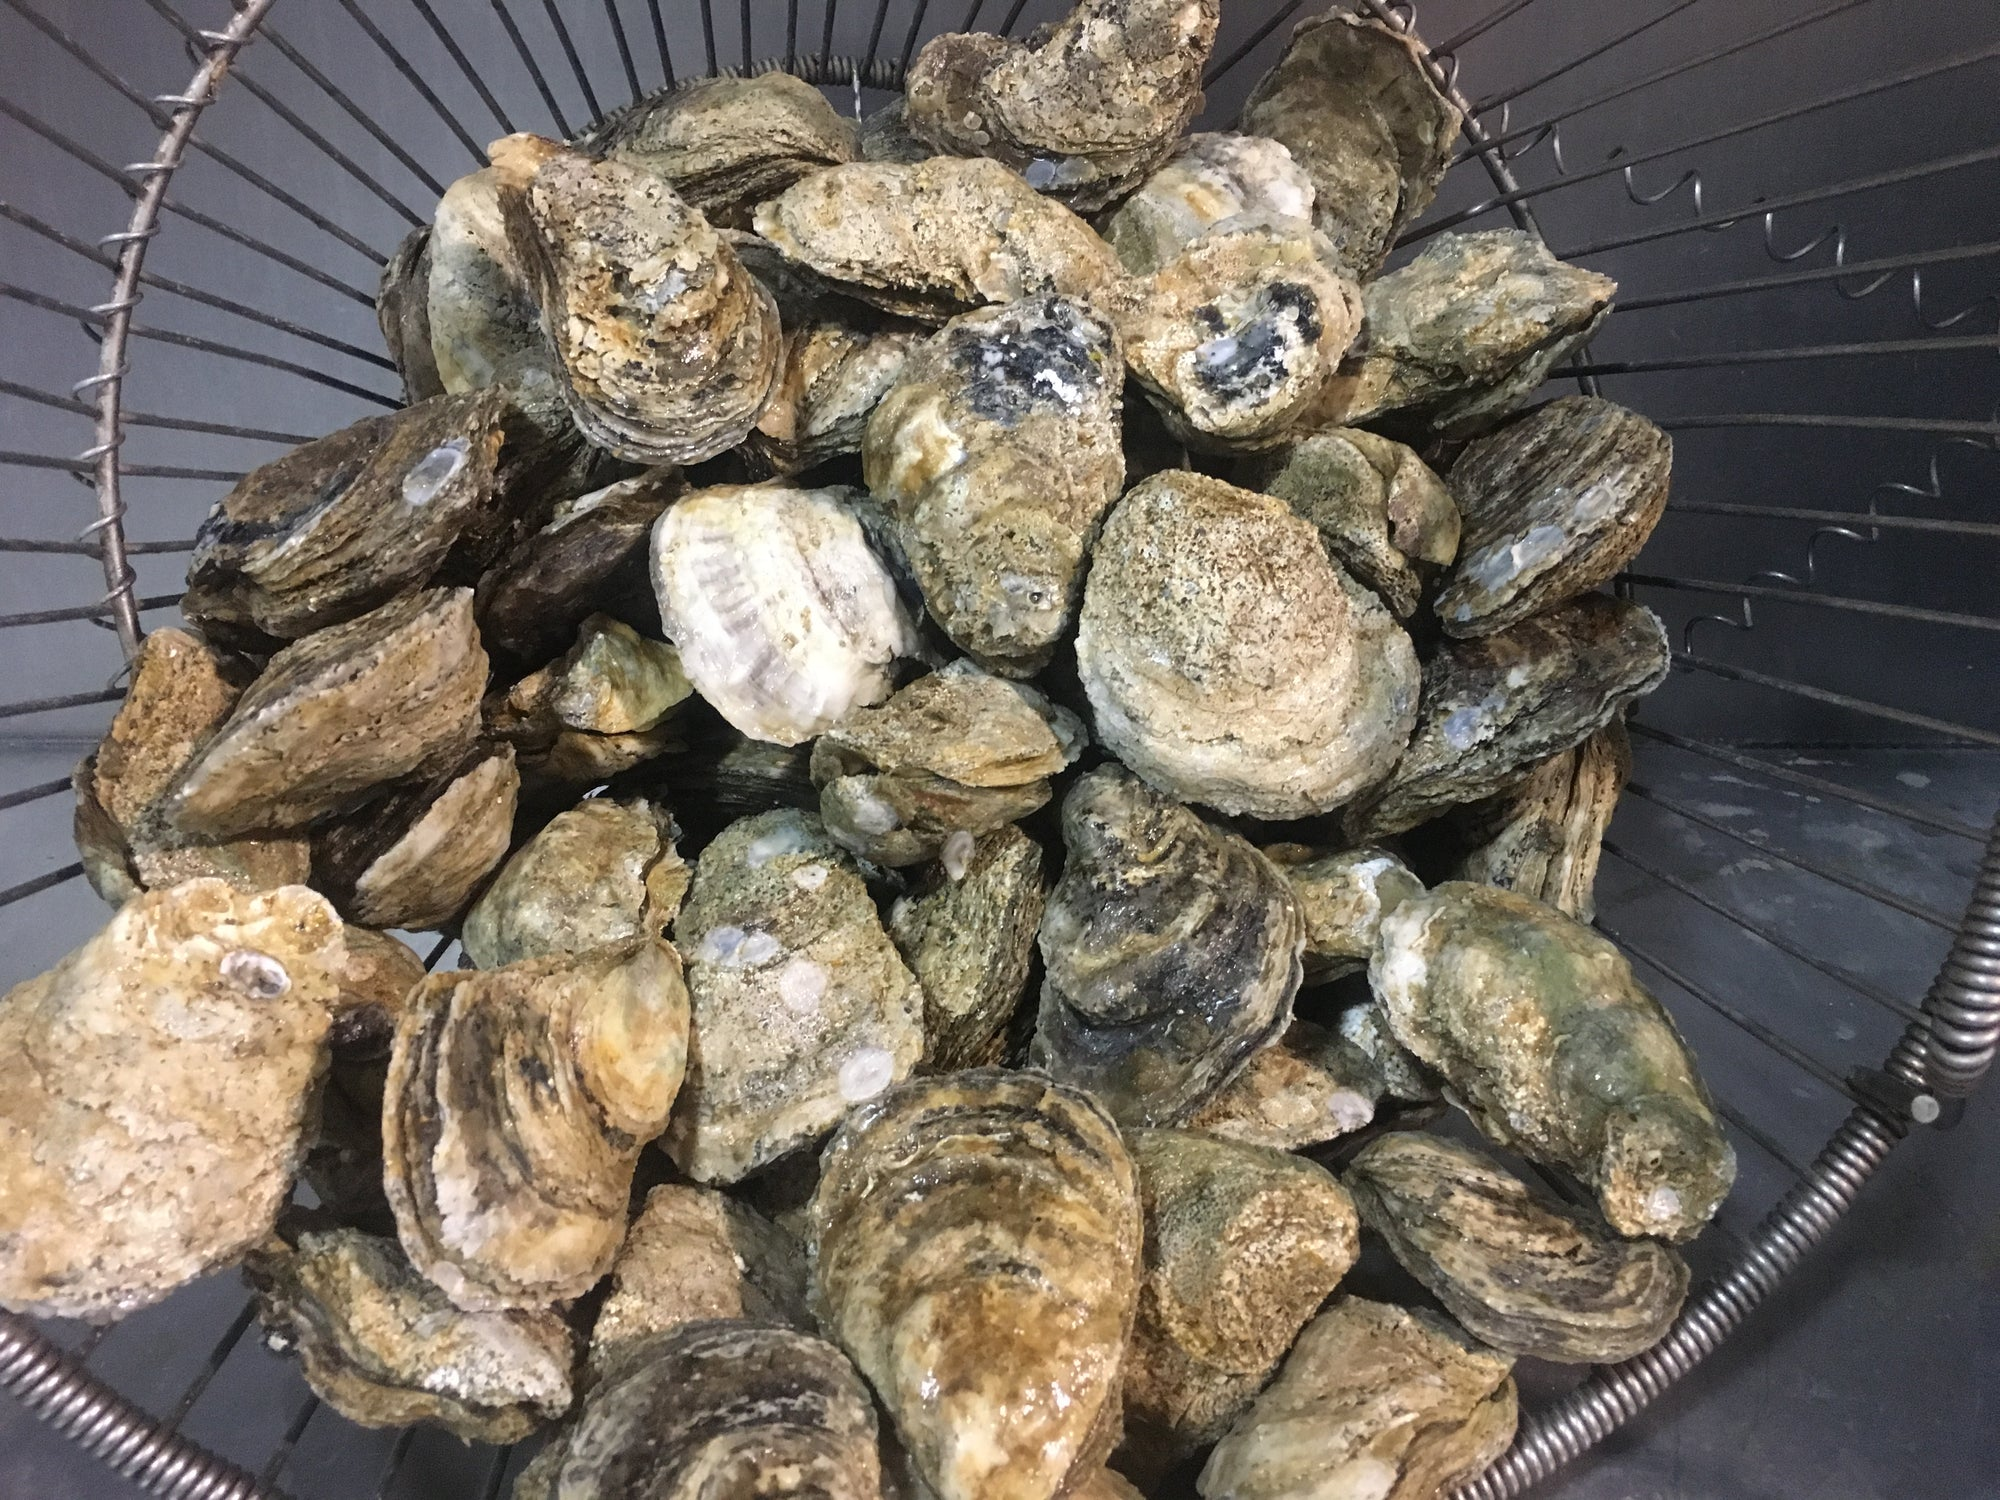 Shell Oysters